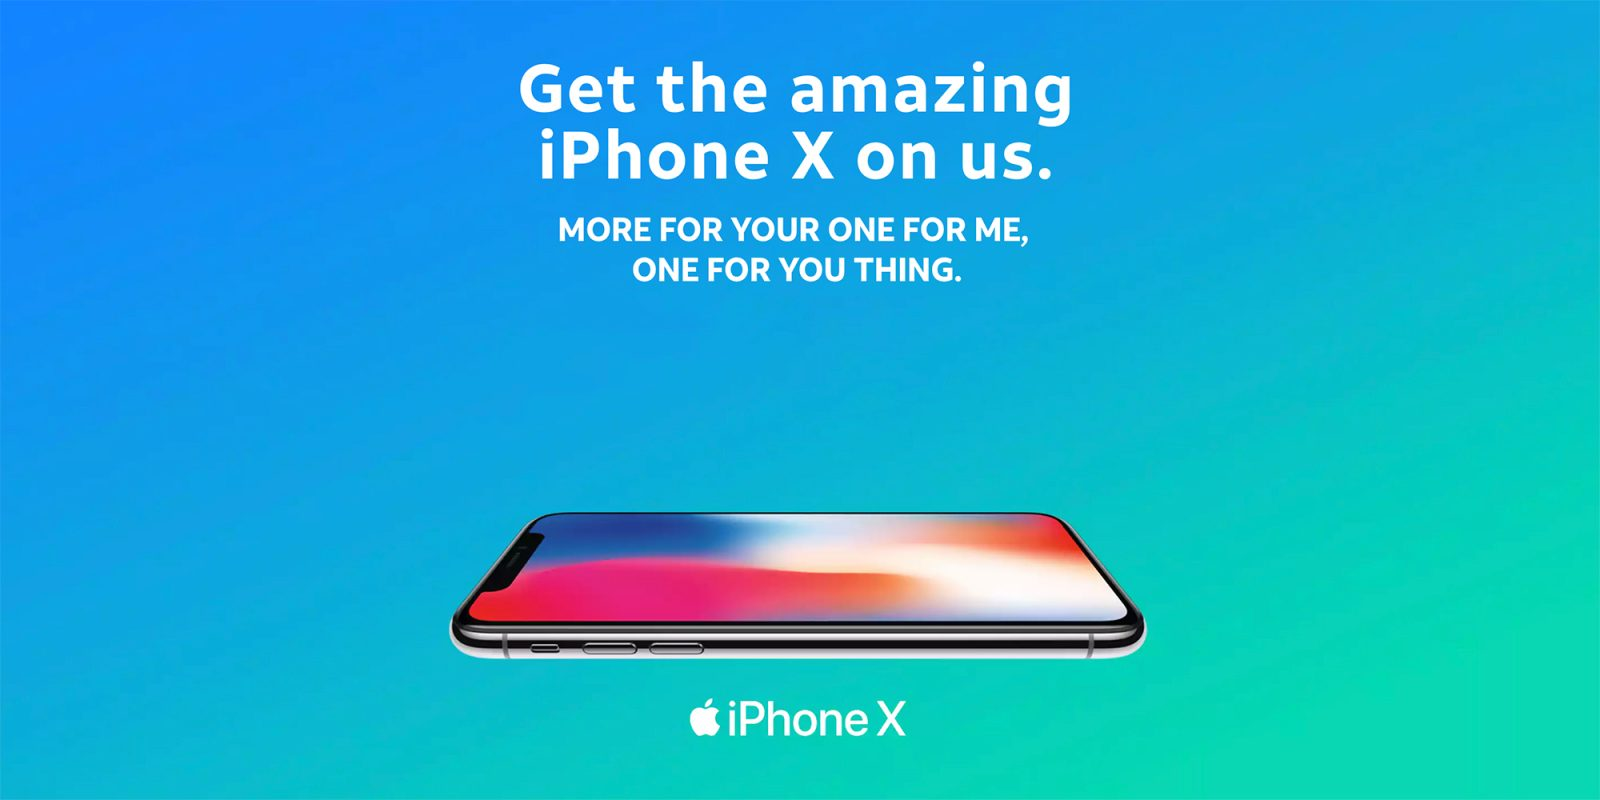 AT&T offers BOGO Free iPhone X for Next customers - 9to5Mac